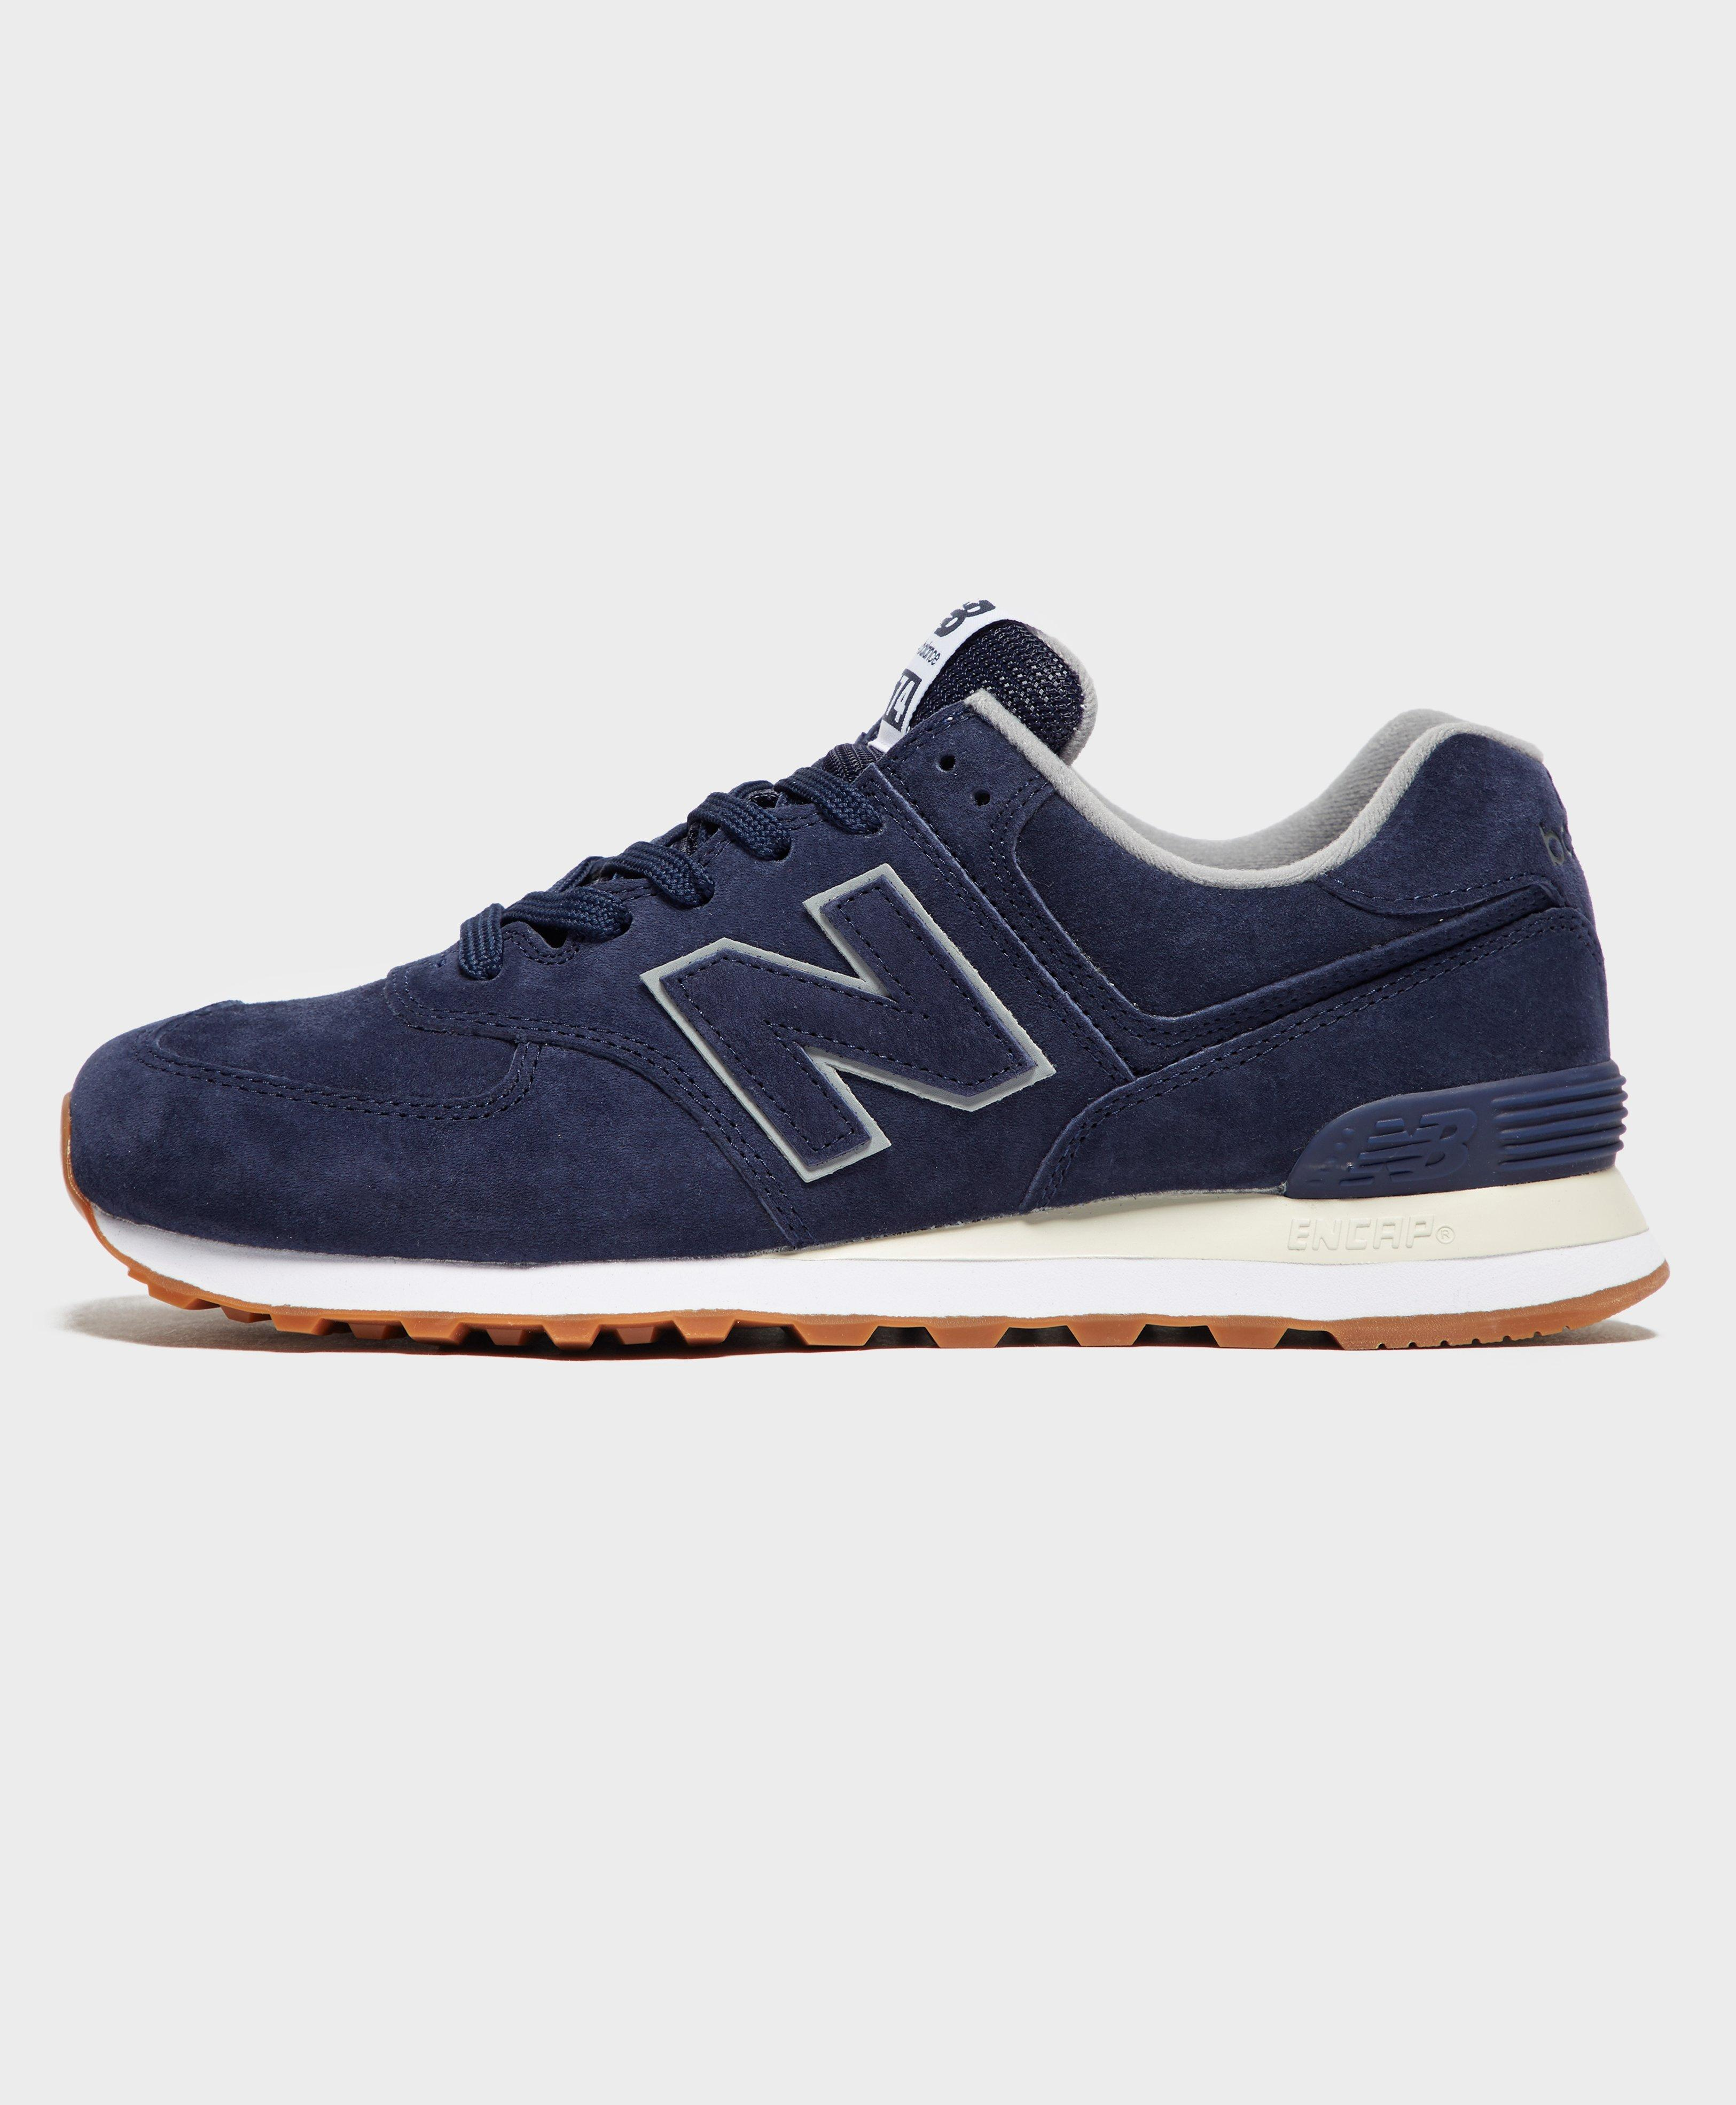 7ebefac01d145 New Balance 574 in Blue for Men - Lyst